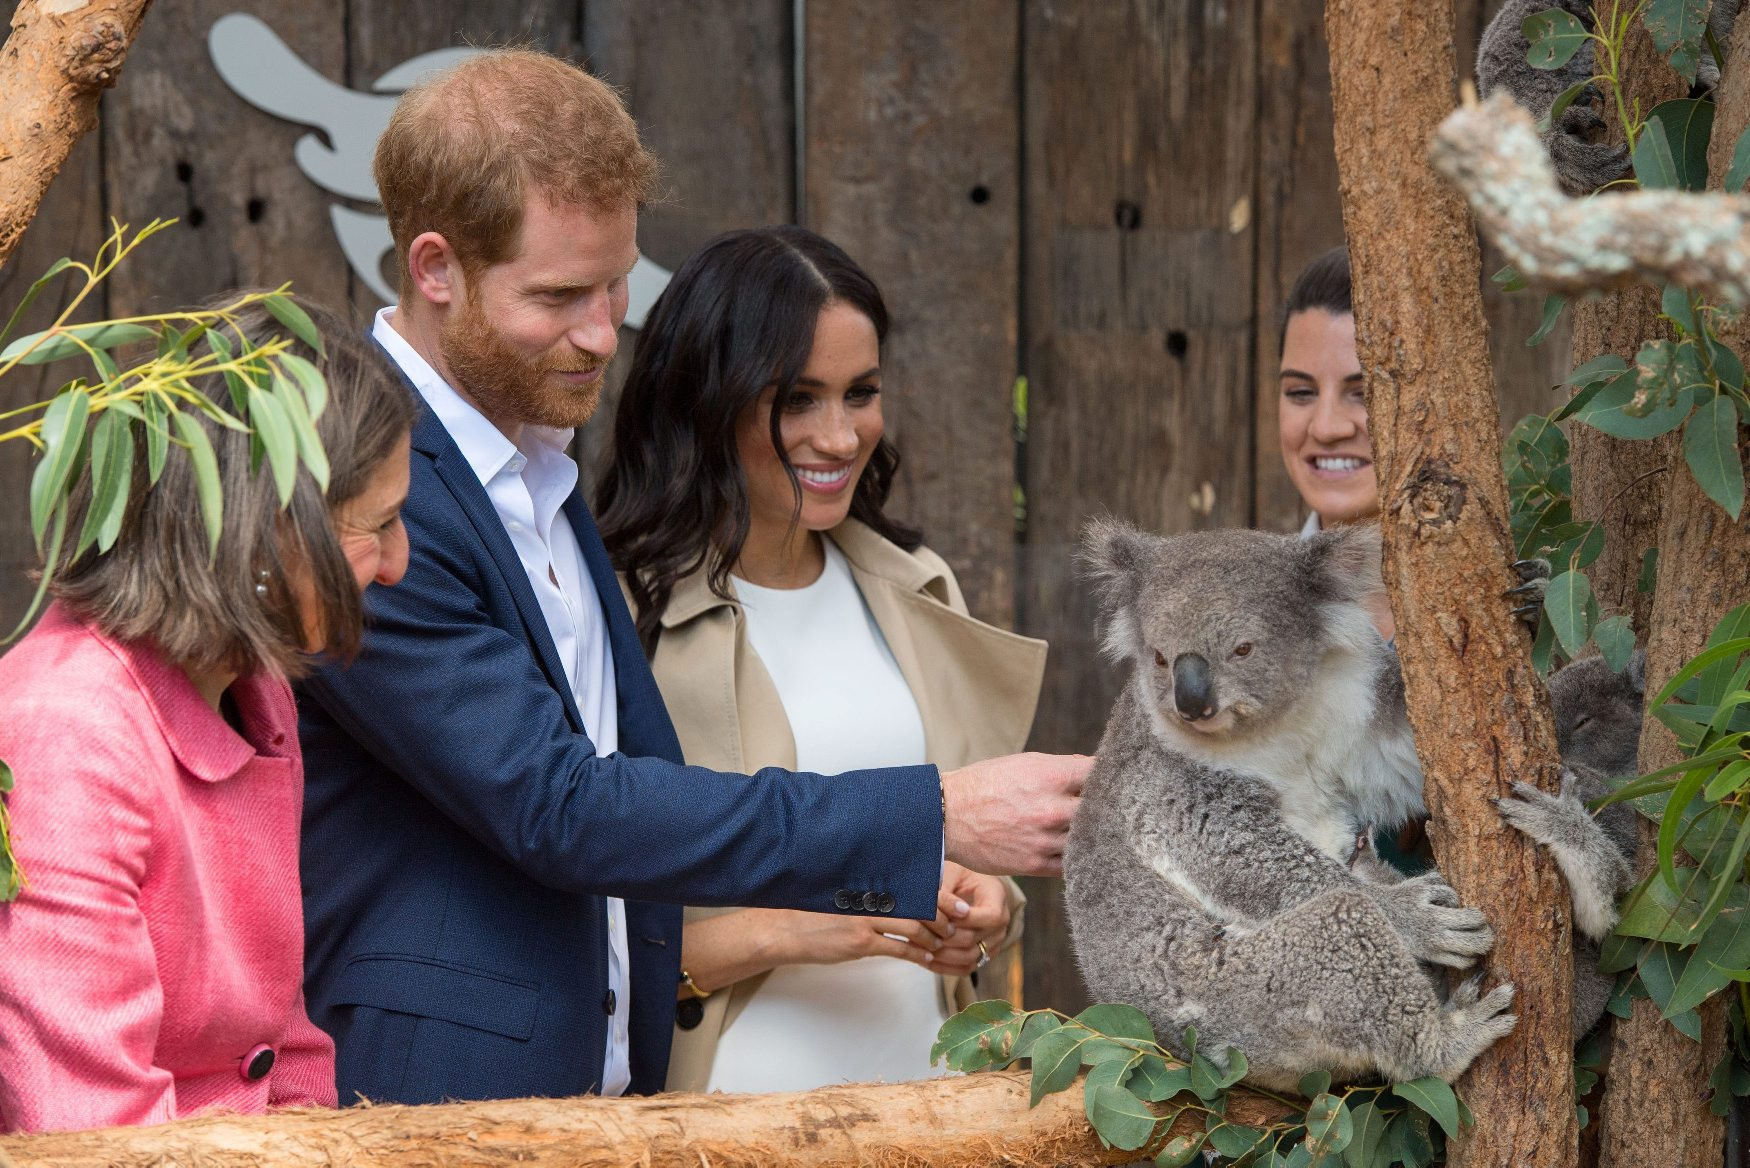 The Duke and Duchess of Sussex meet a Koala called Ruby during a visit to Taronga Zoo in Sydney on the first day of the Royal couple's visit to Australia October 16, 2018. Harry and Meghan will take part in 76 engagements in Australia, Fiji, Tonga and New Zealand over their 16-day trip to the Pacific region. Dominic Lipinski/Pool via REUTERS